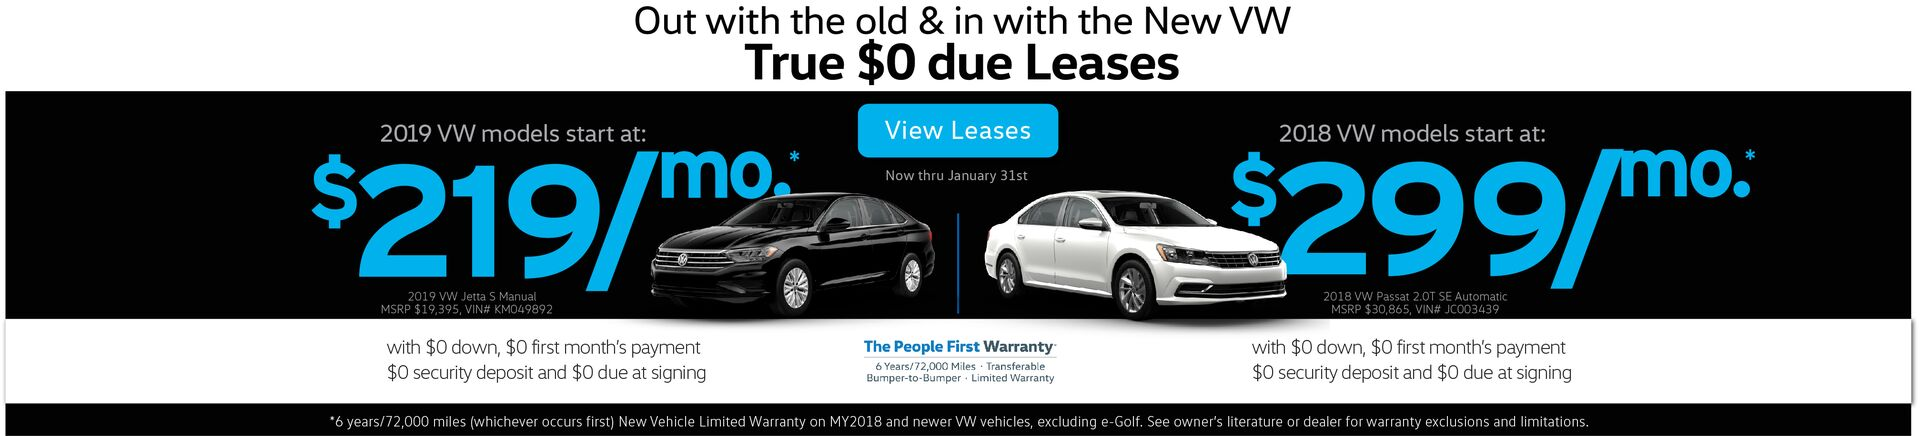 Capo VW New Year Leases as low as $199/mo. with $0 due at signing